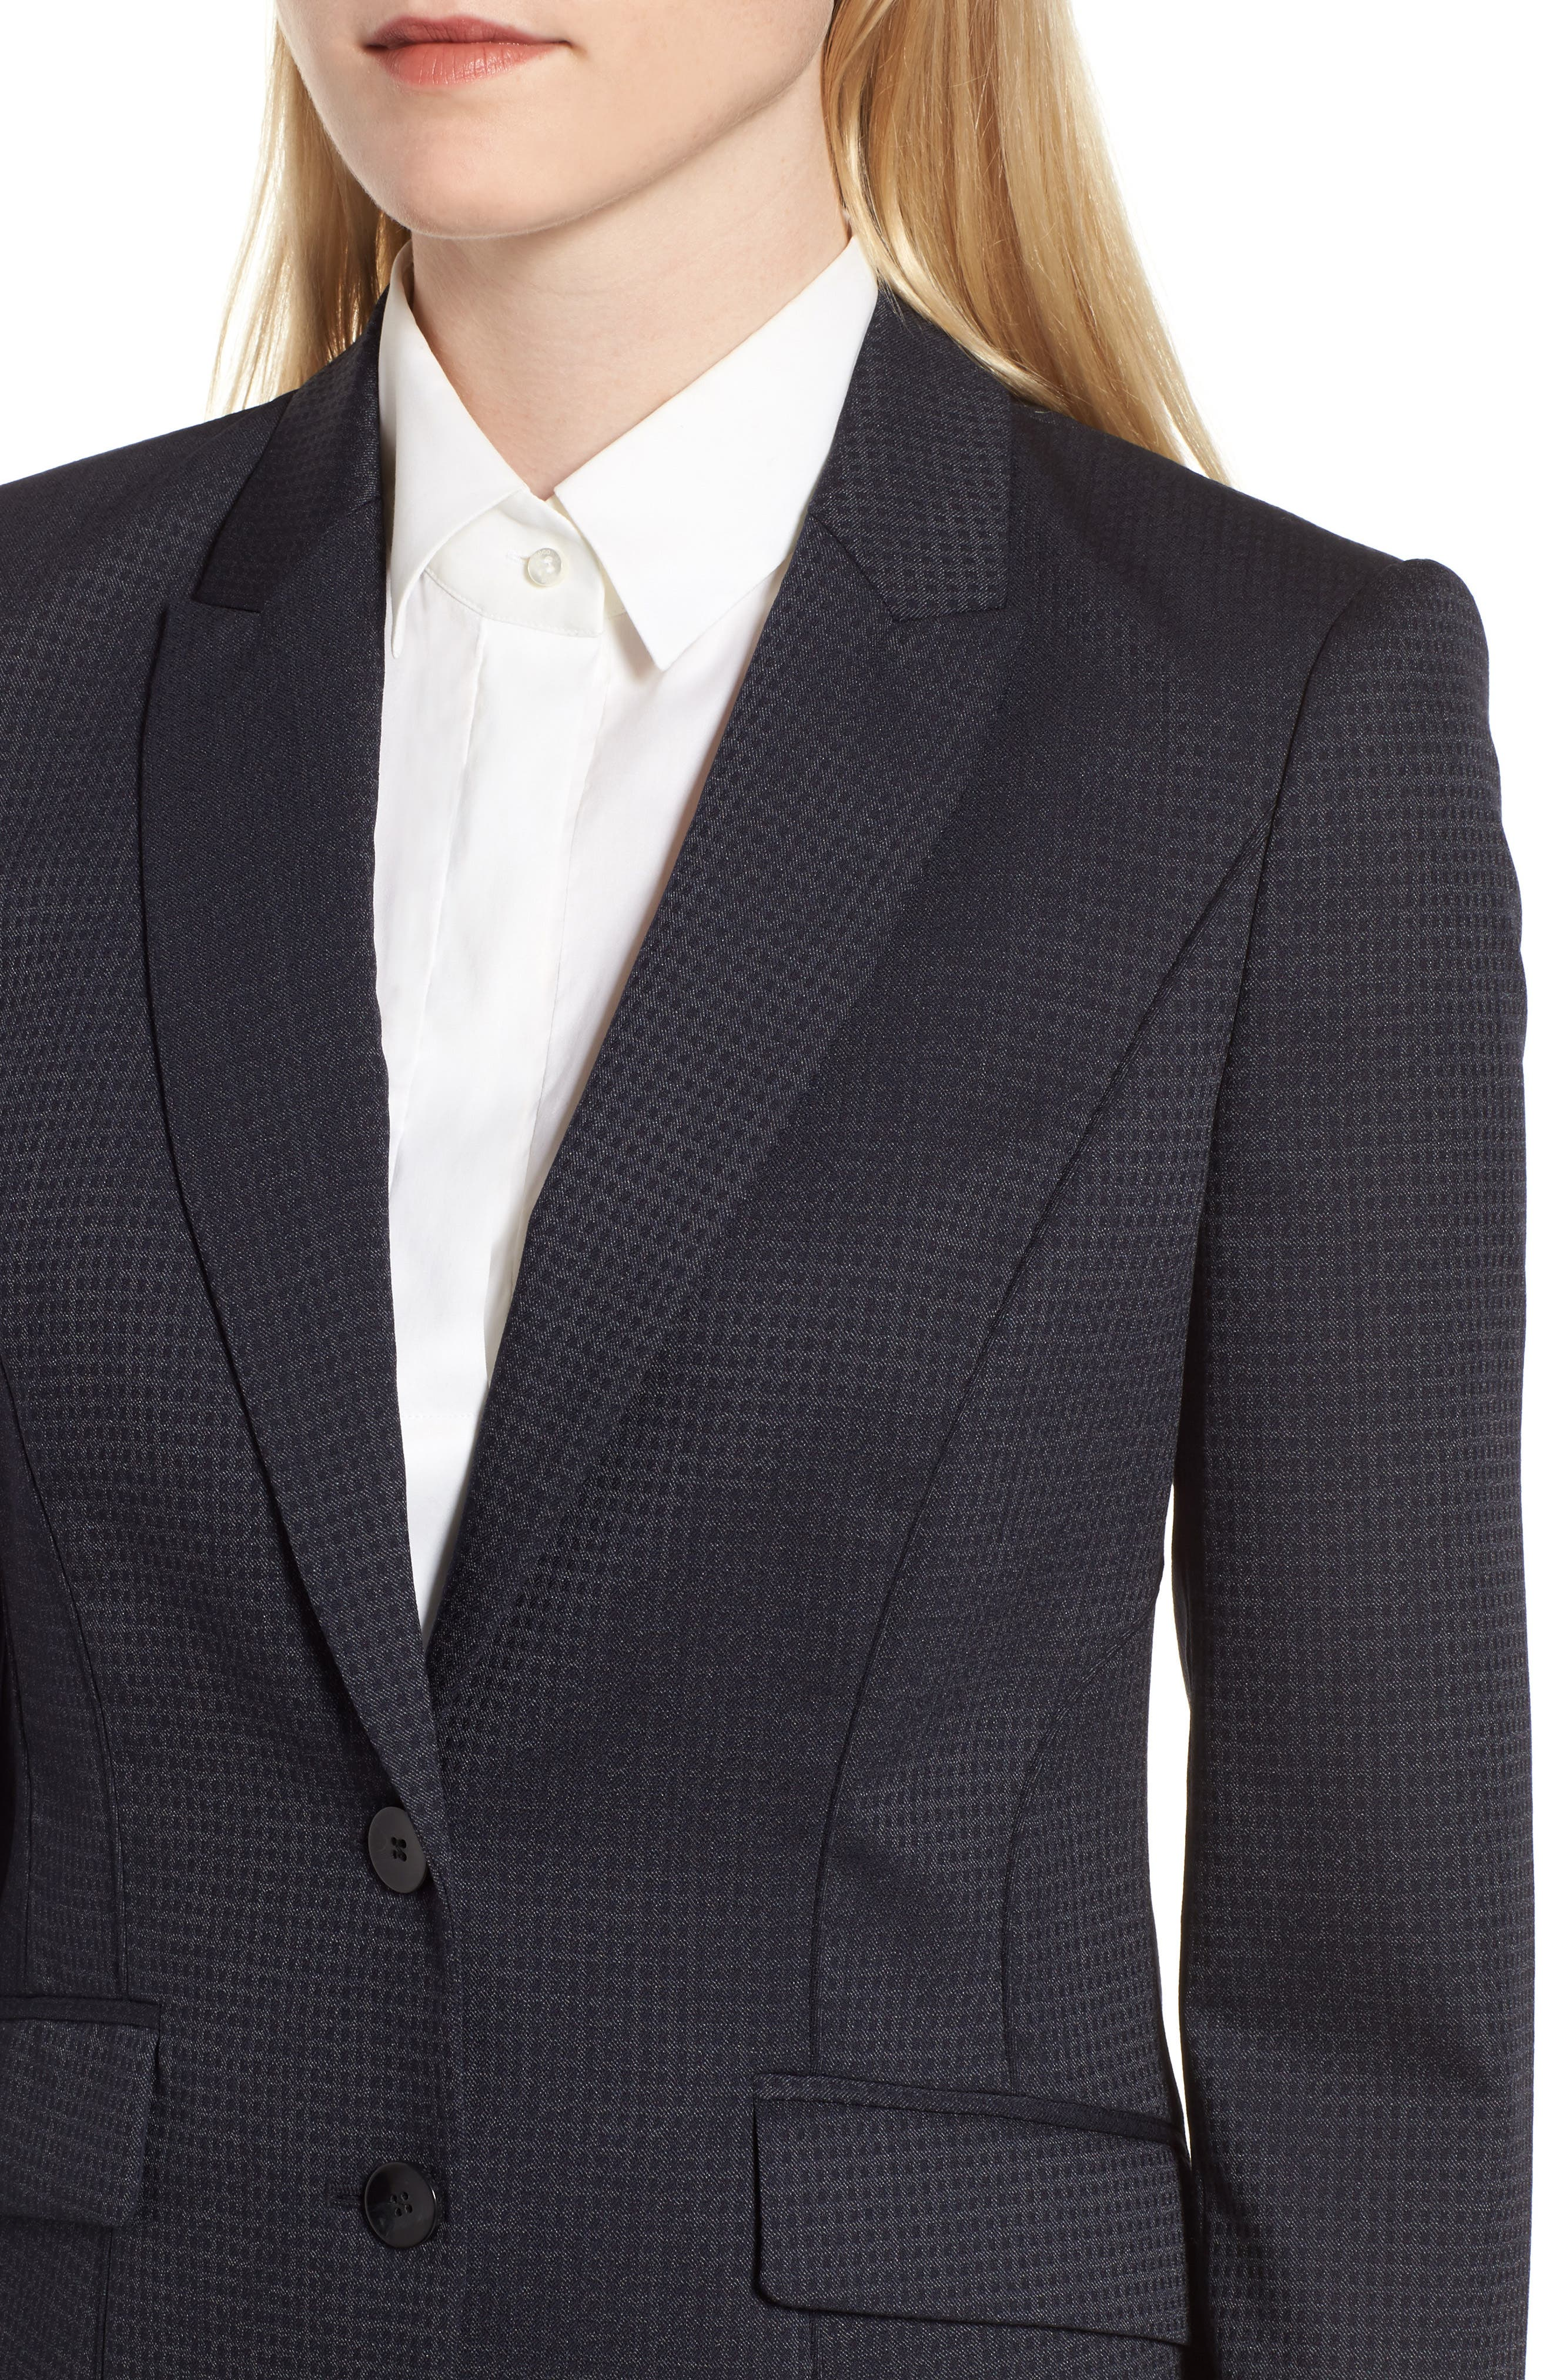 Jukani Check Wool Blend Suit Jacket,                             Alternate thumbnail 4, color,                             020